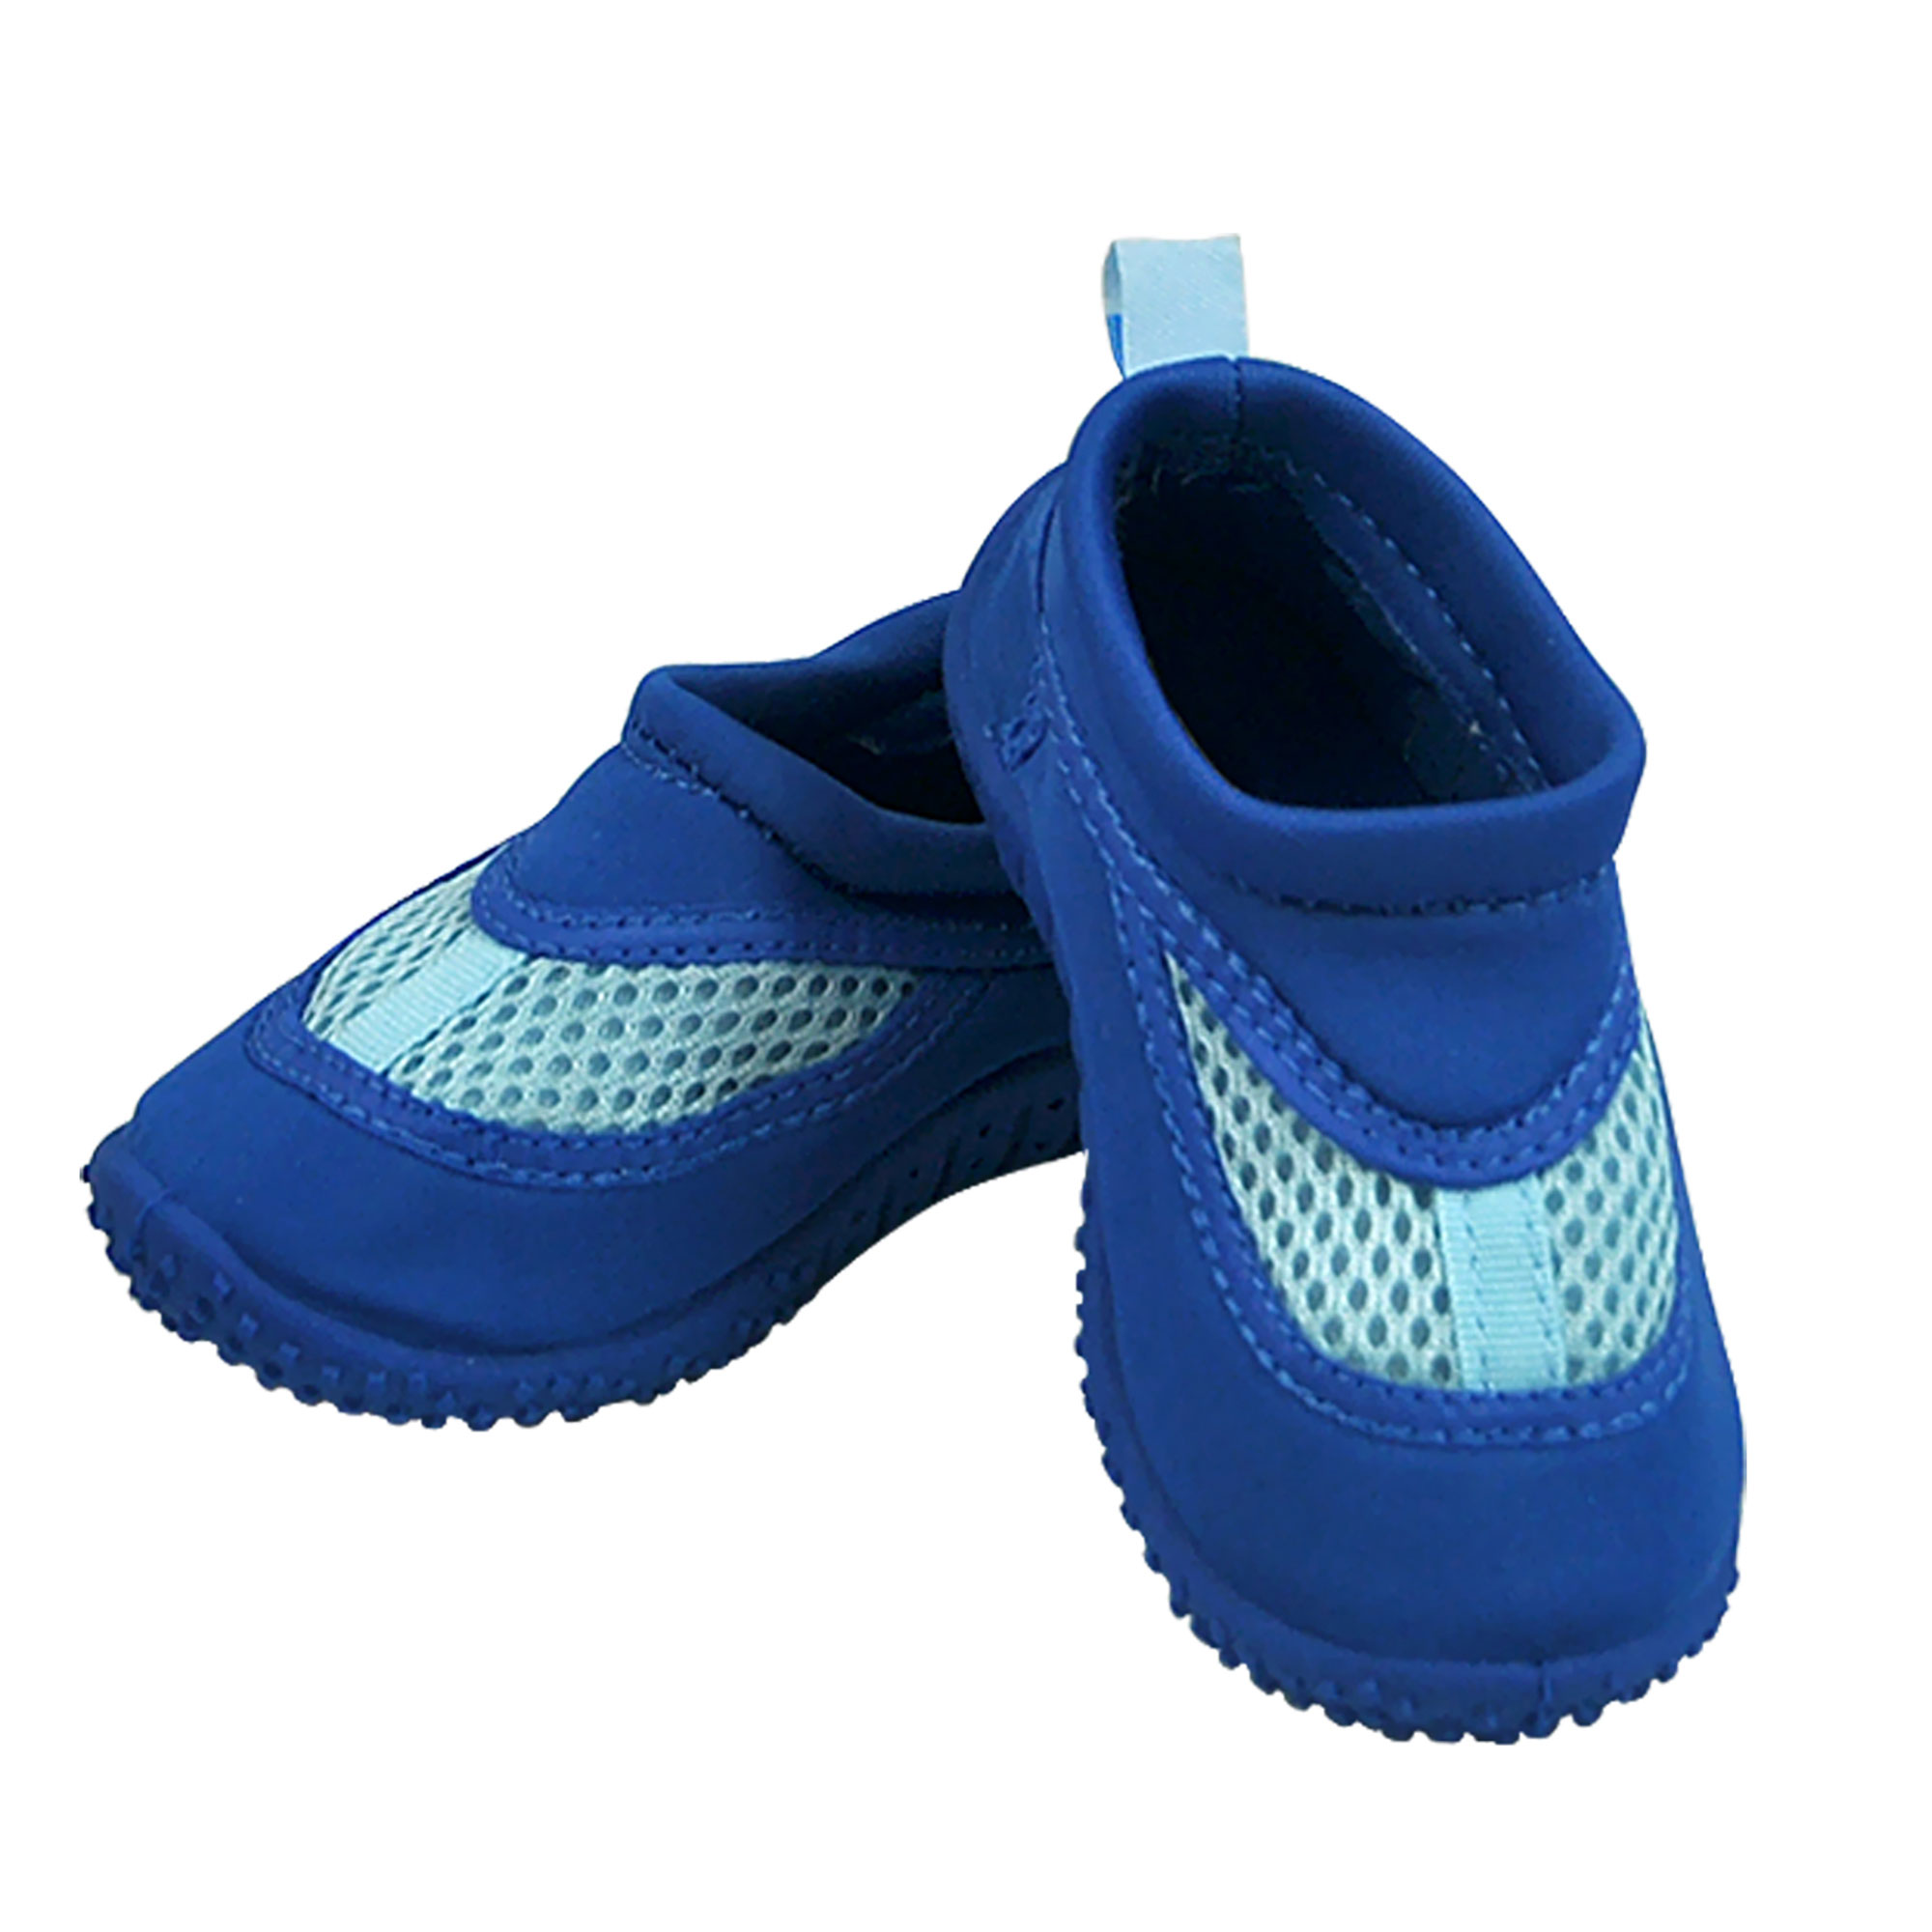 Iplay Baby Boys Sand And Water Swim Shoes Kids Aqua Socks For Babies